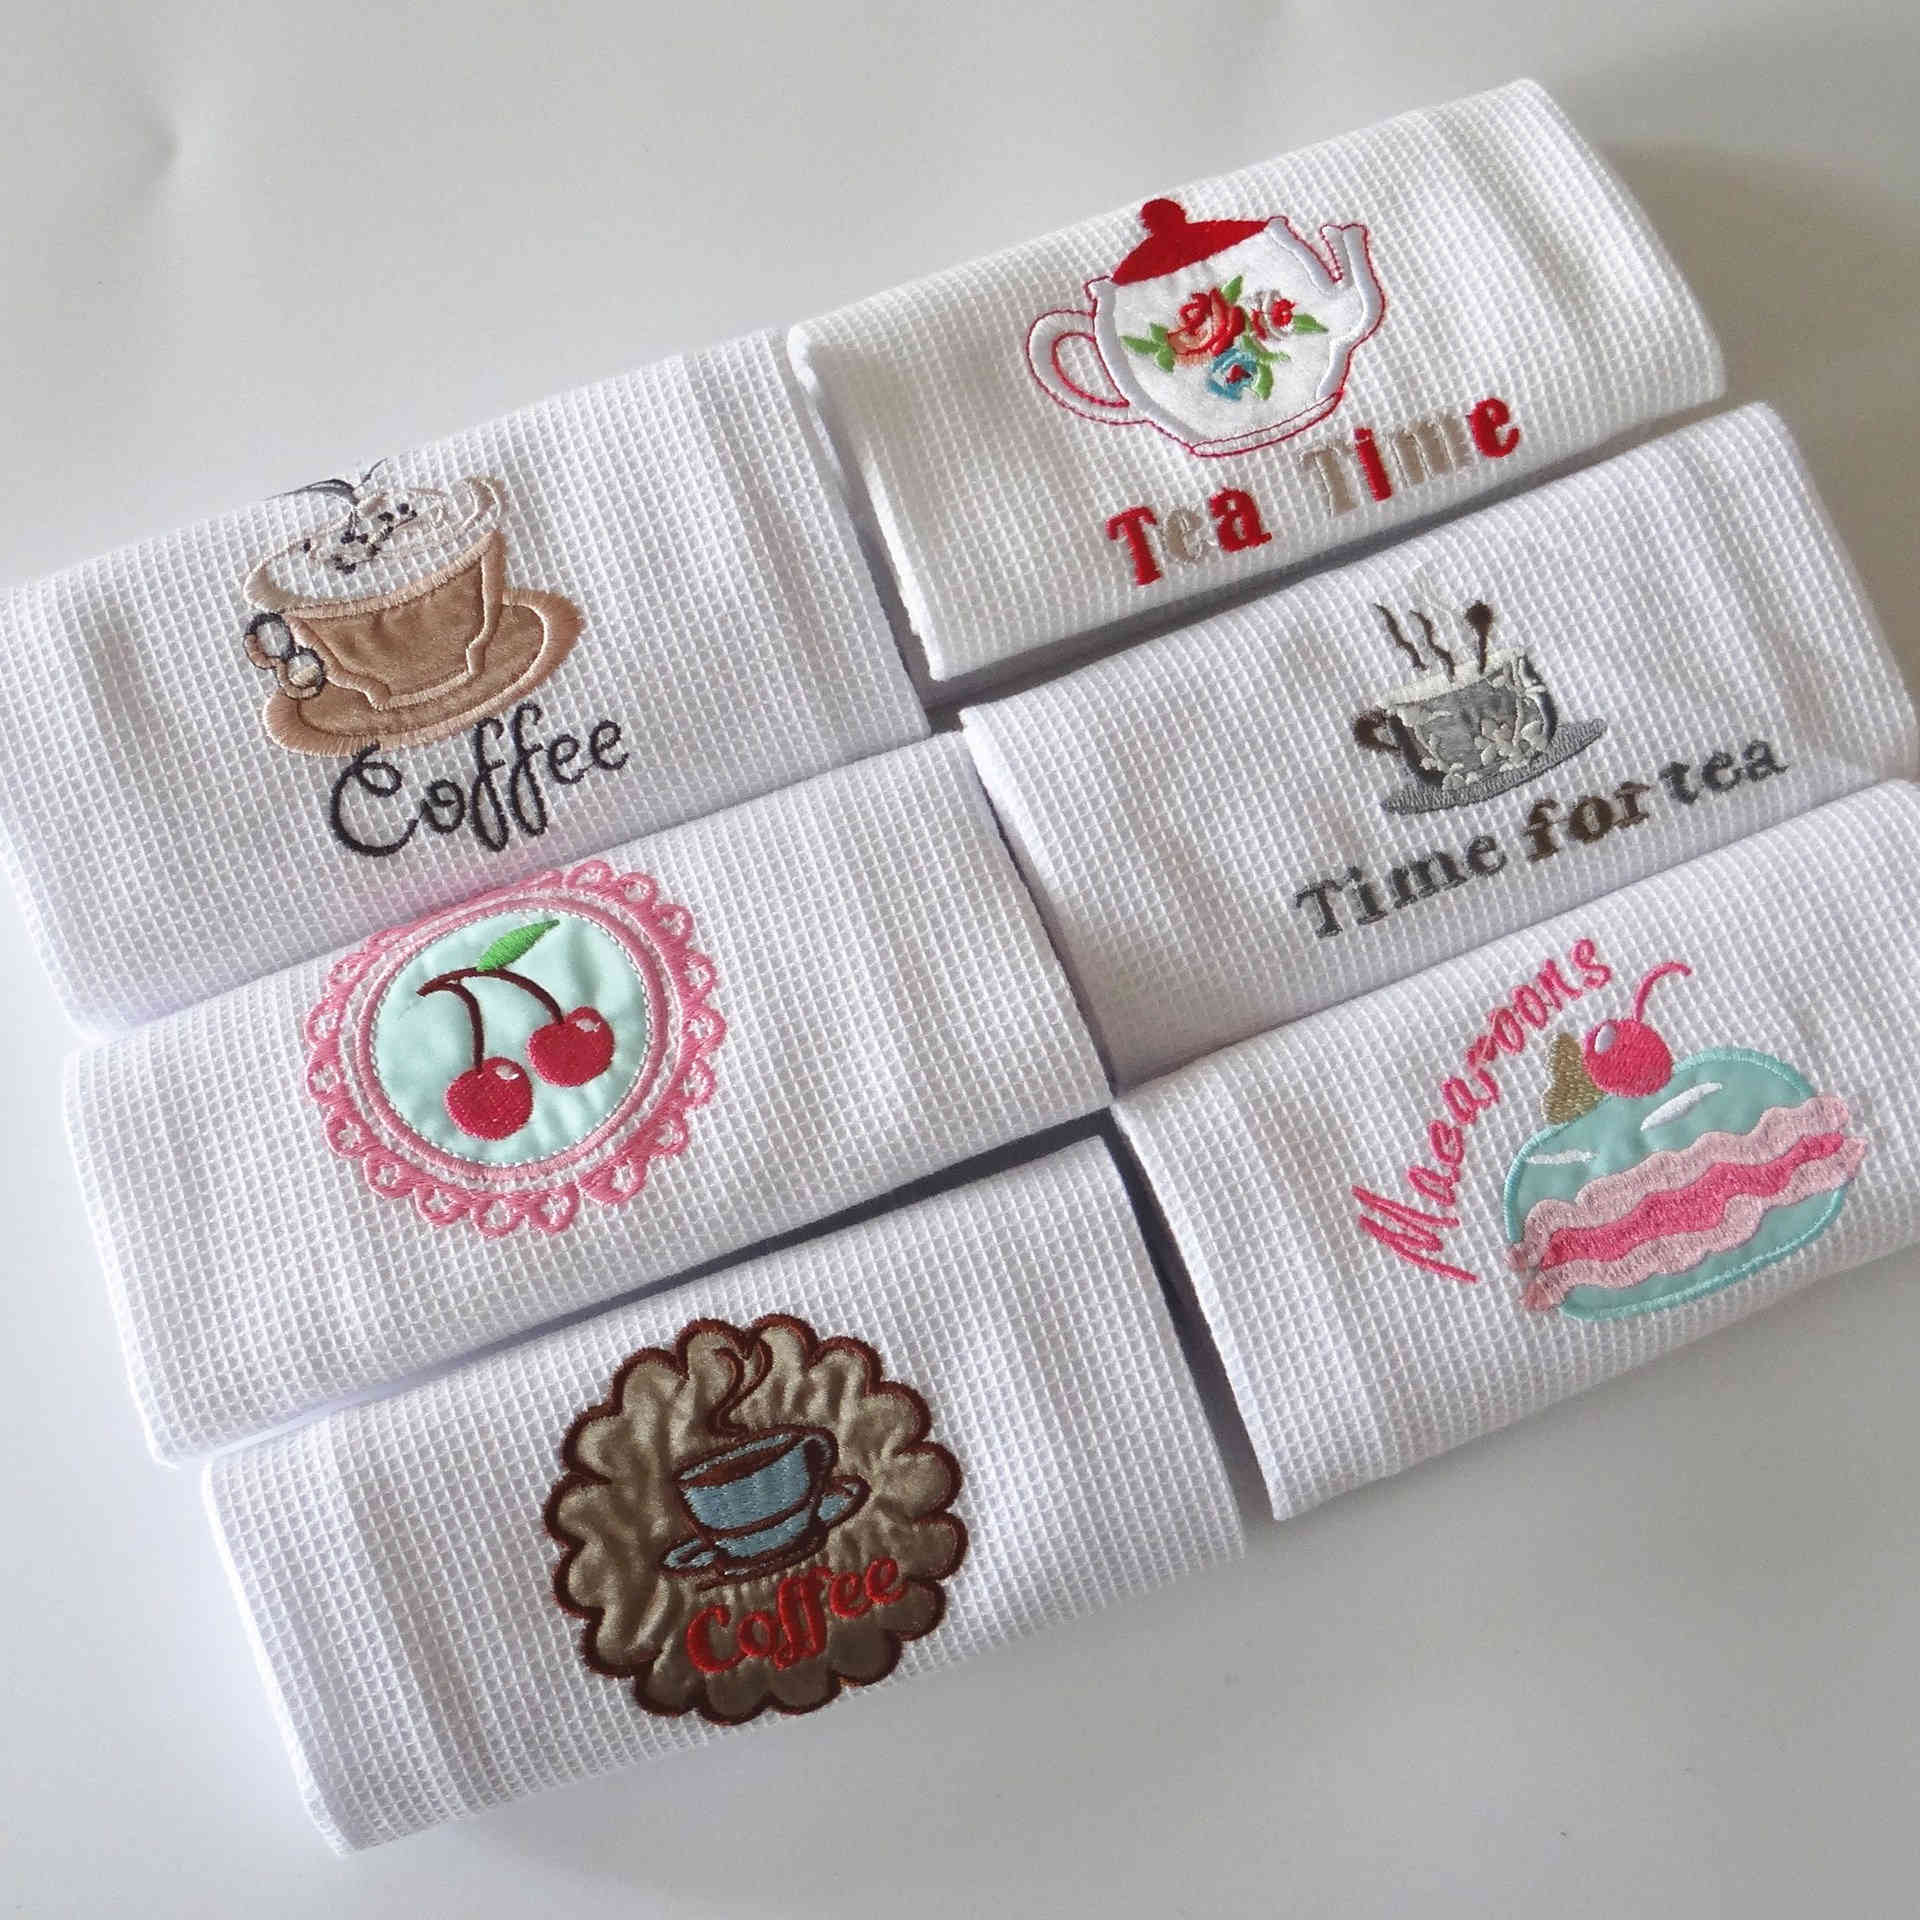 Plain Cloth Kitchen Towel 100% Cotton Yarn Dyed or Custom Pattern Printed Embroidery Available